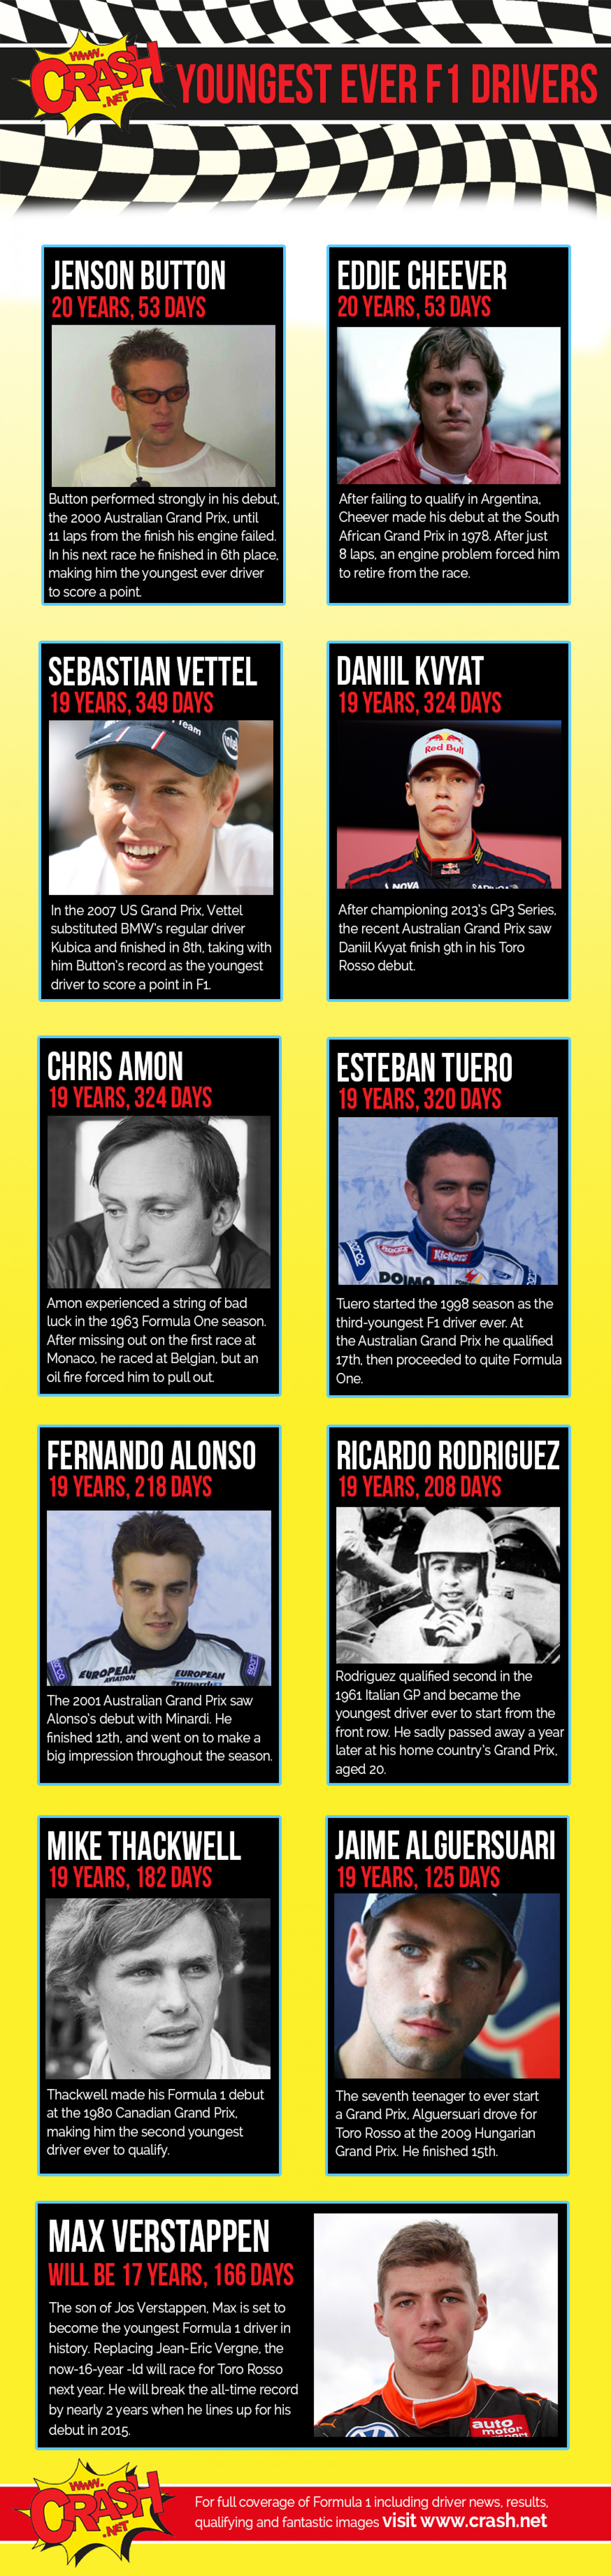 The Youngest Ever F1 Drivers Infographic